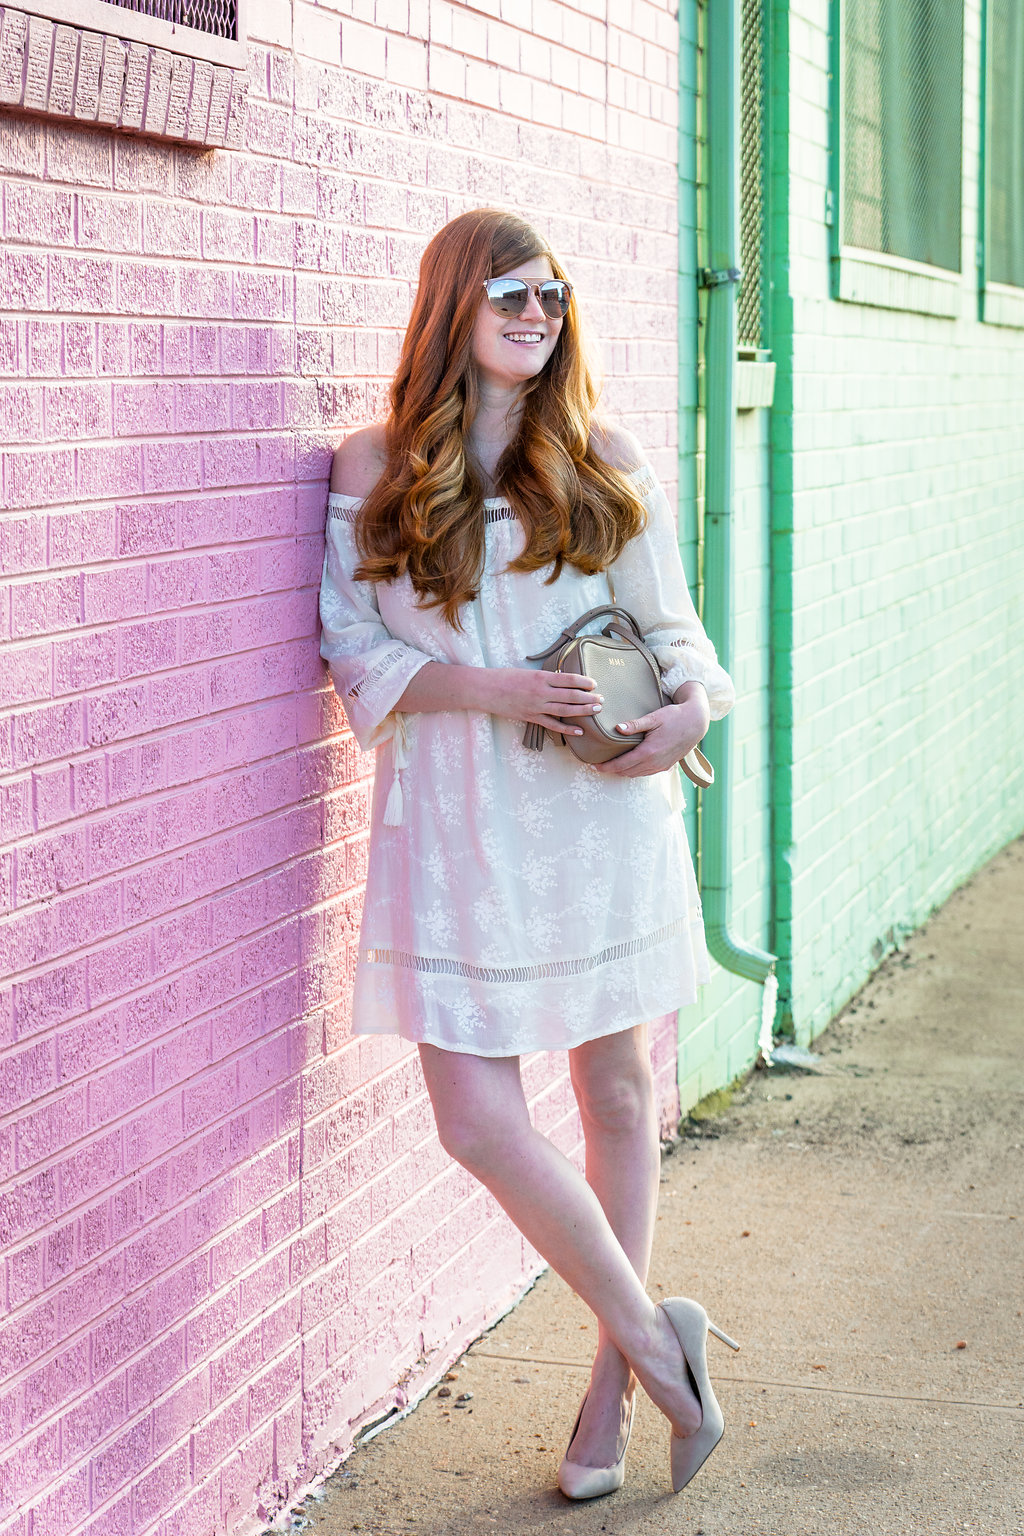 Lifestyle blogger Mollie Sheperdson shares photos from Denver as well as details on the new LiketoKnow.it app